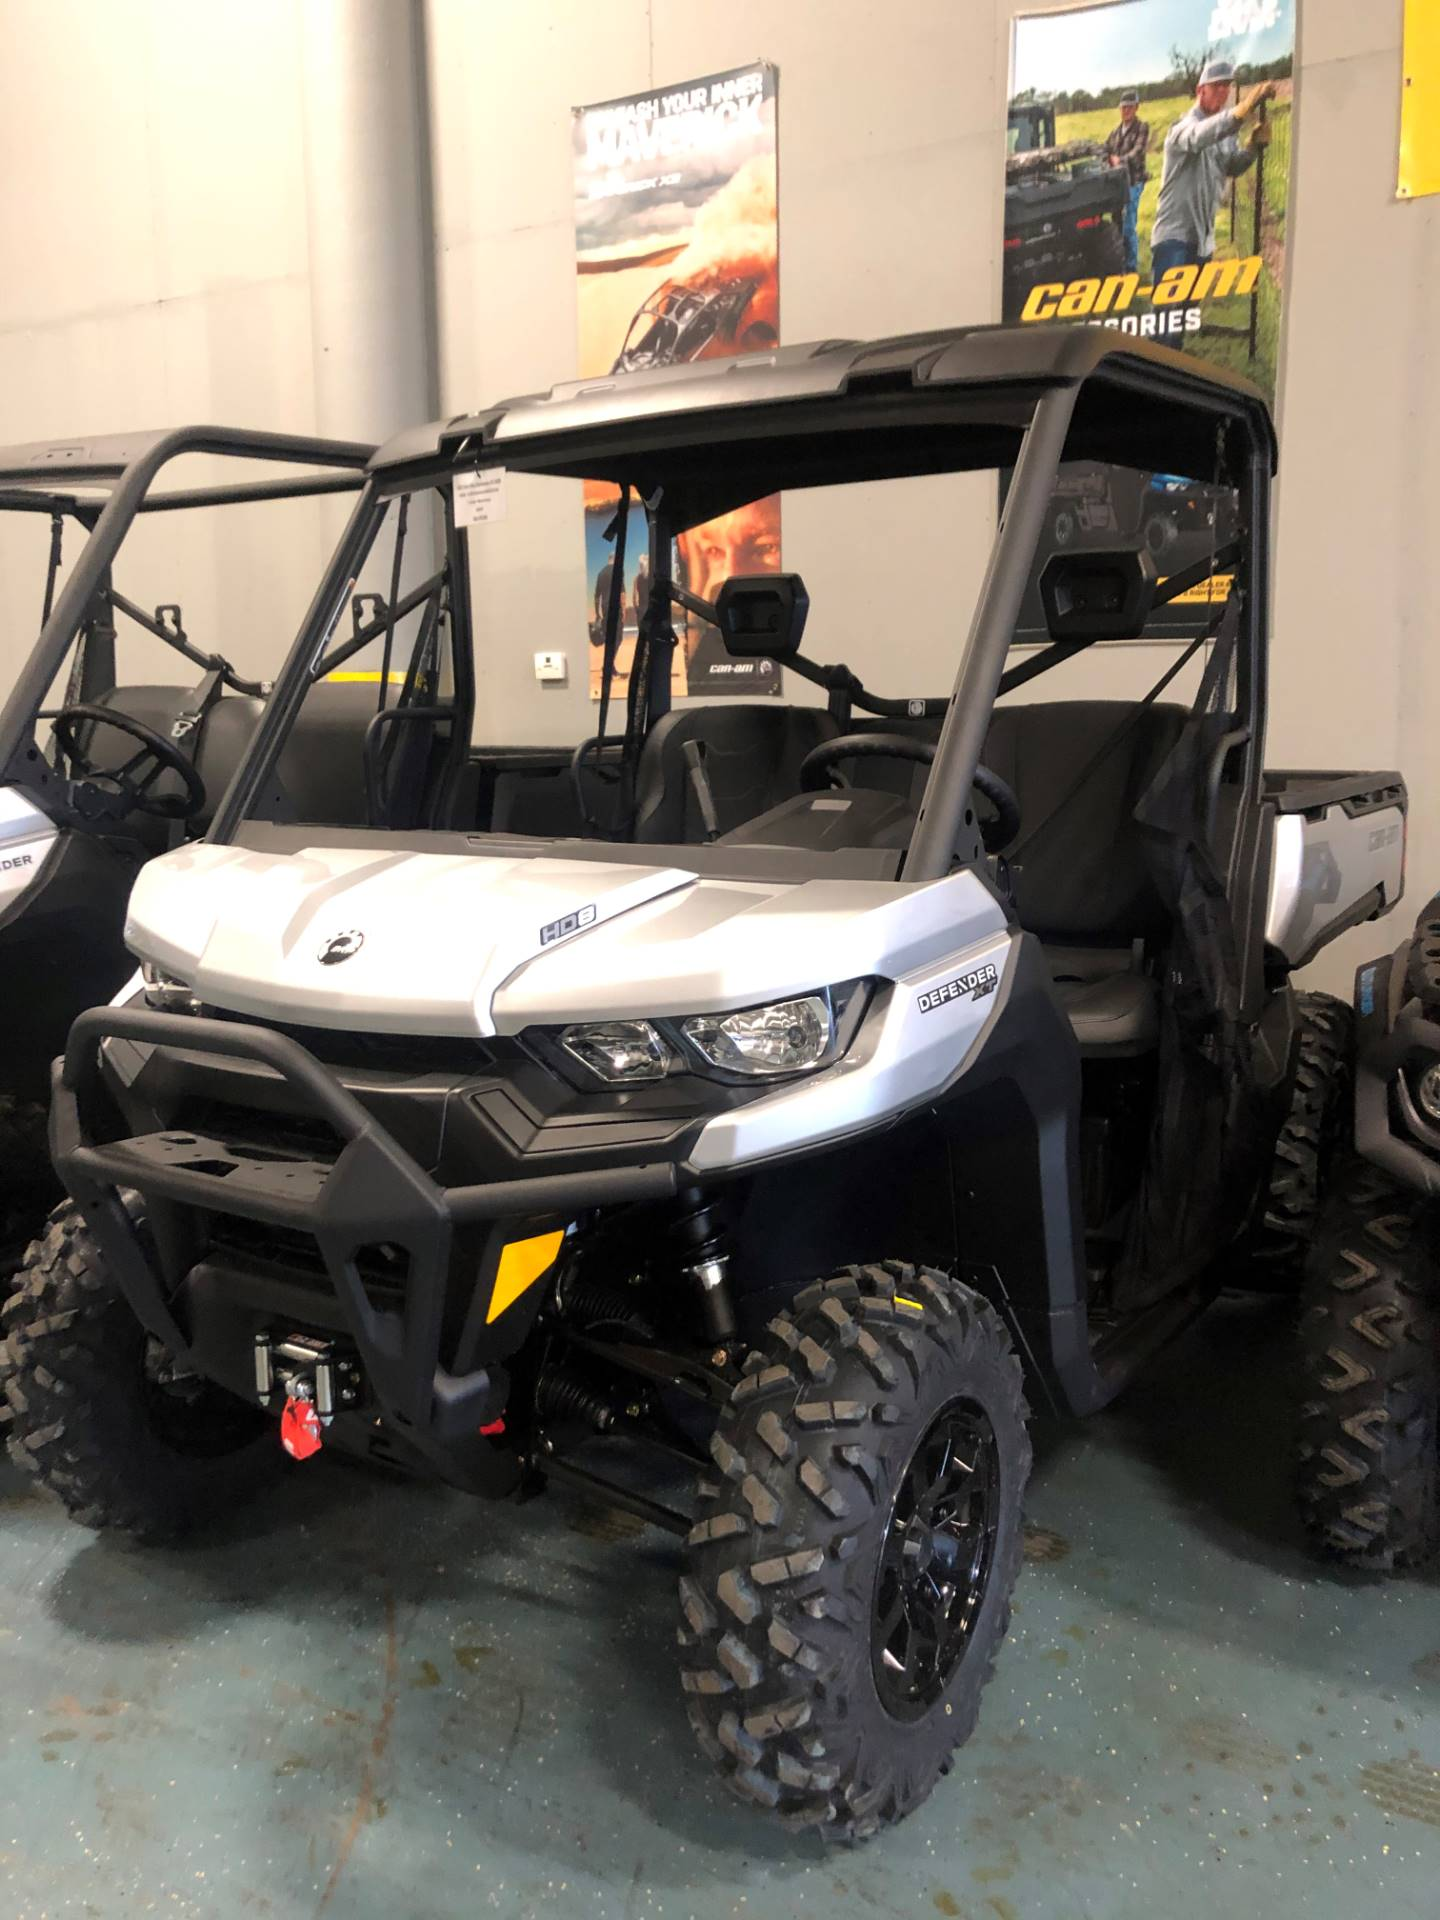 2021 Can-Am Defender XT HD8 in Waco, Texas - Photo 1